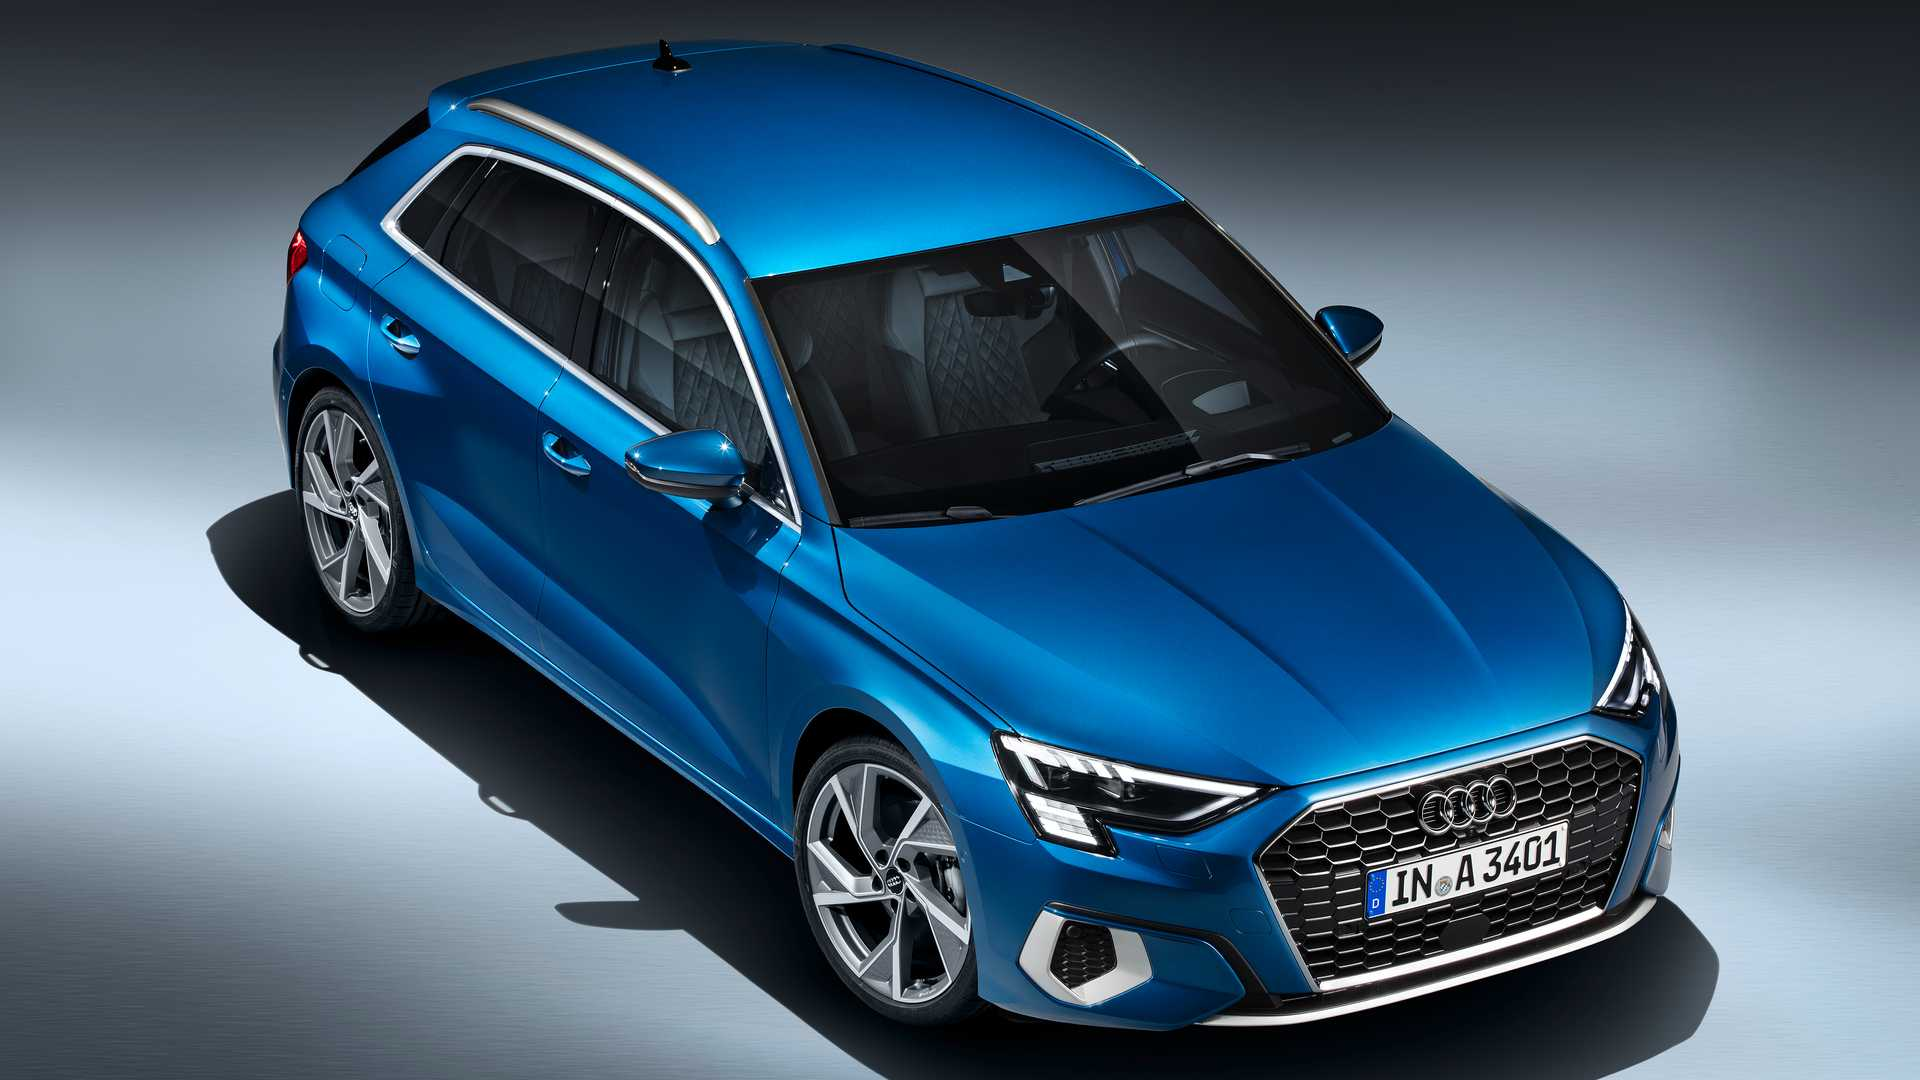 2021 Audi A3 Sportback Debuts With Posh Design, All-New ...